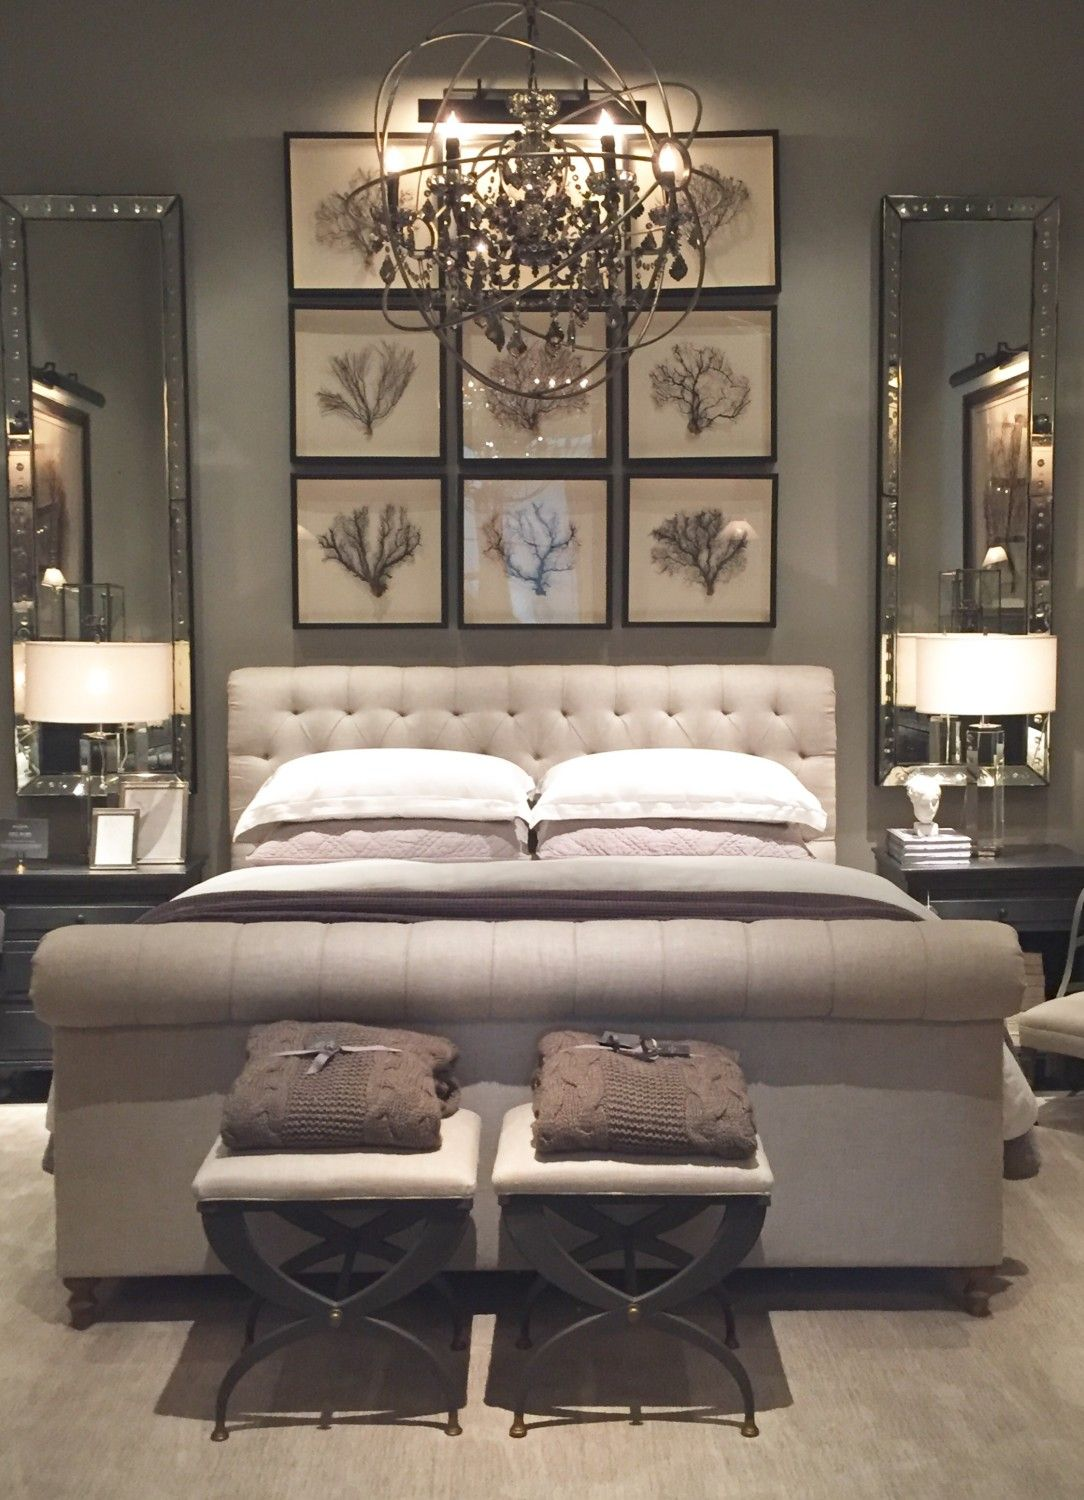 Restoration hardware bedroom - Restoration Hardware Tampa Part One Starfish Cottage Reminds Me Of Our Master Bedroom Lovely Neutrals